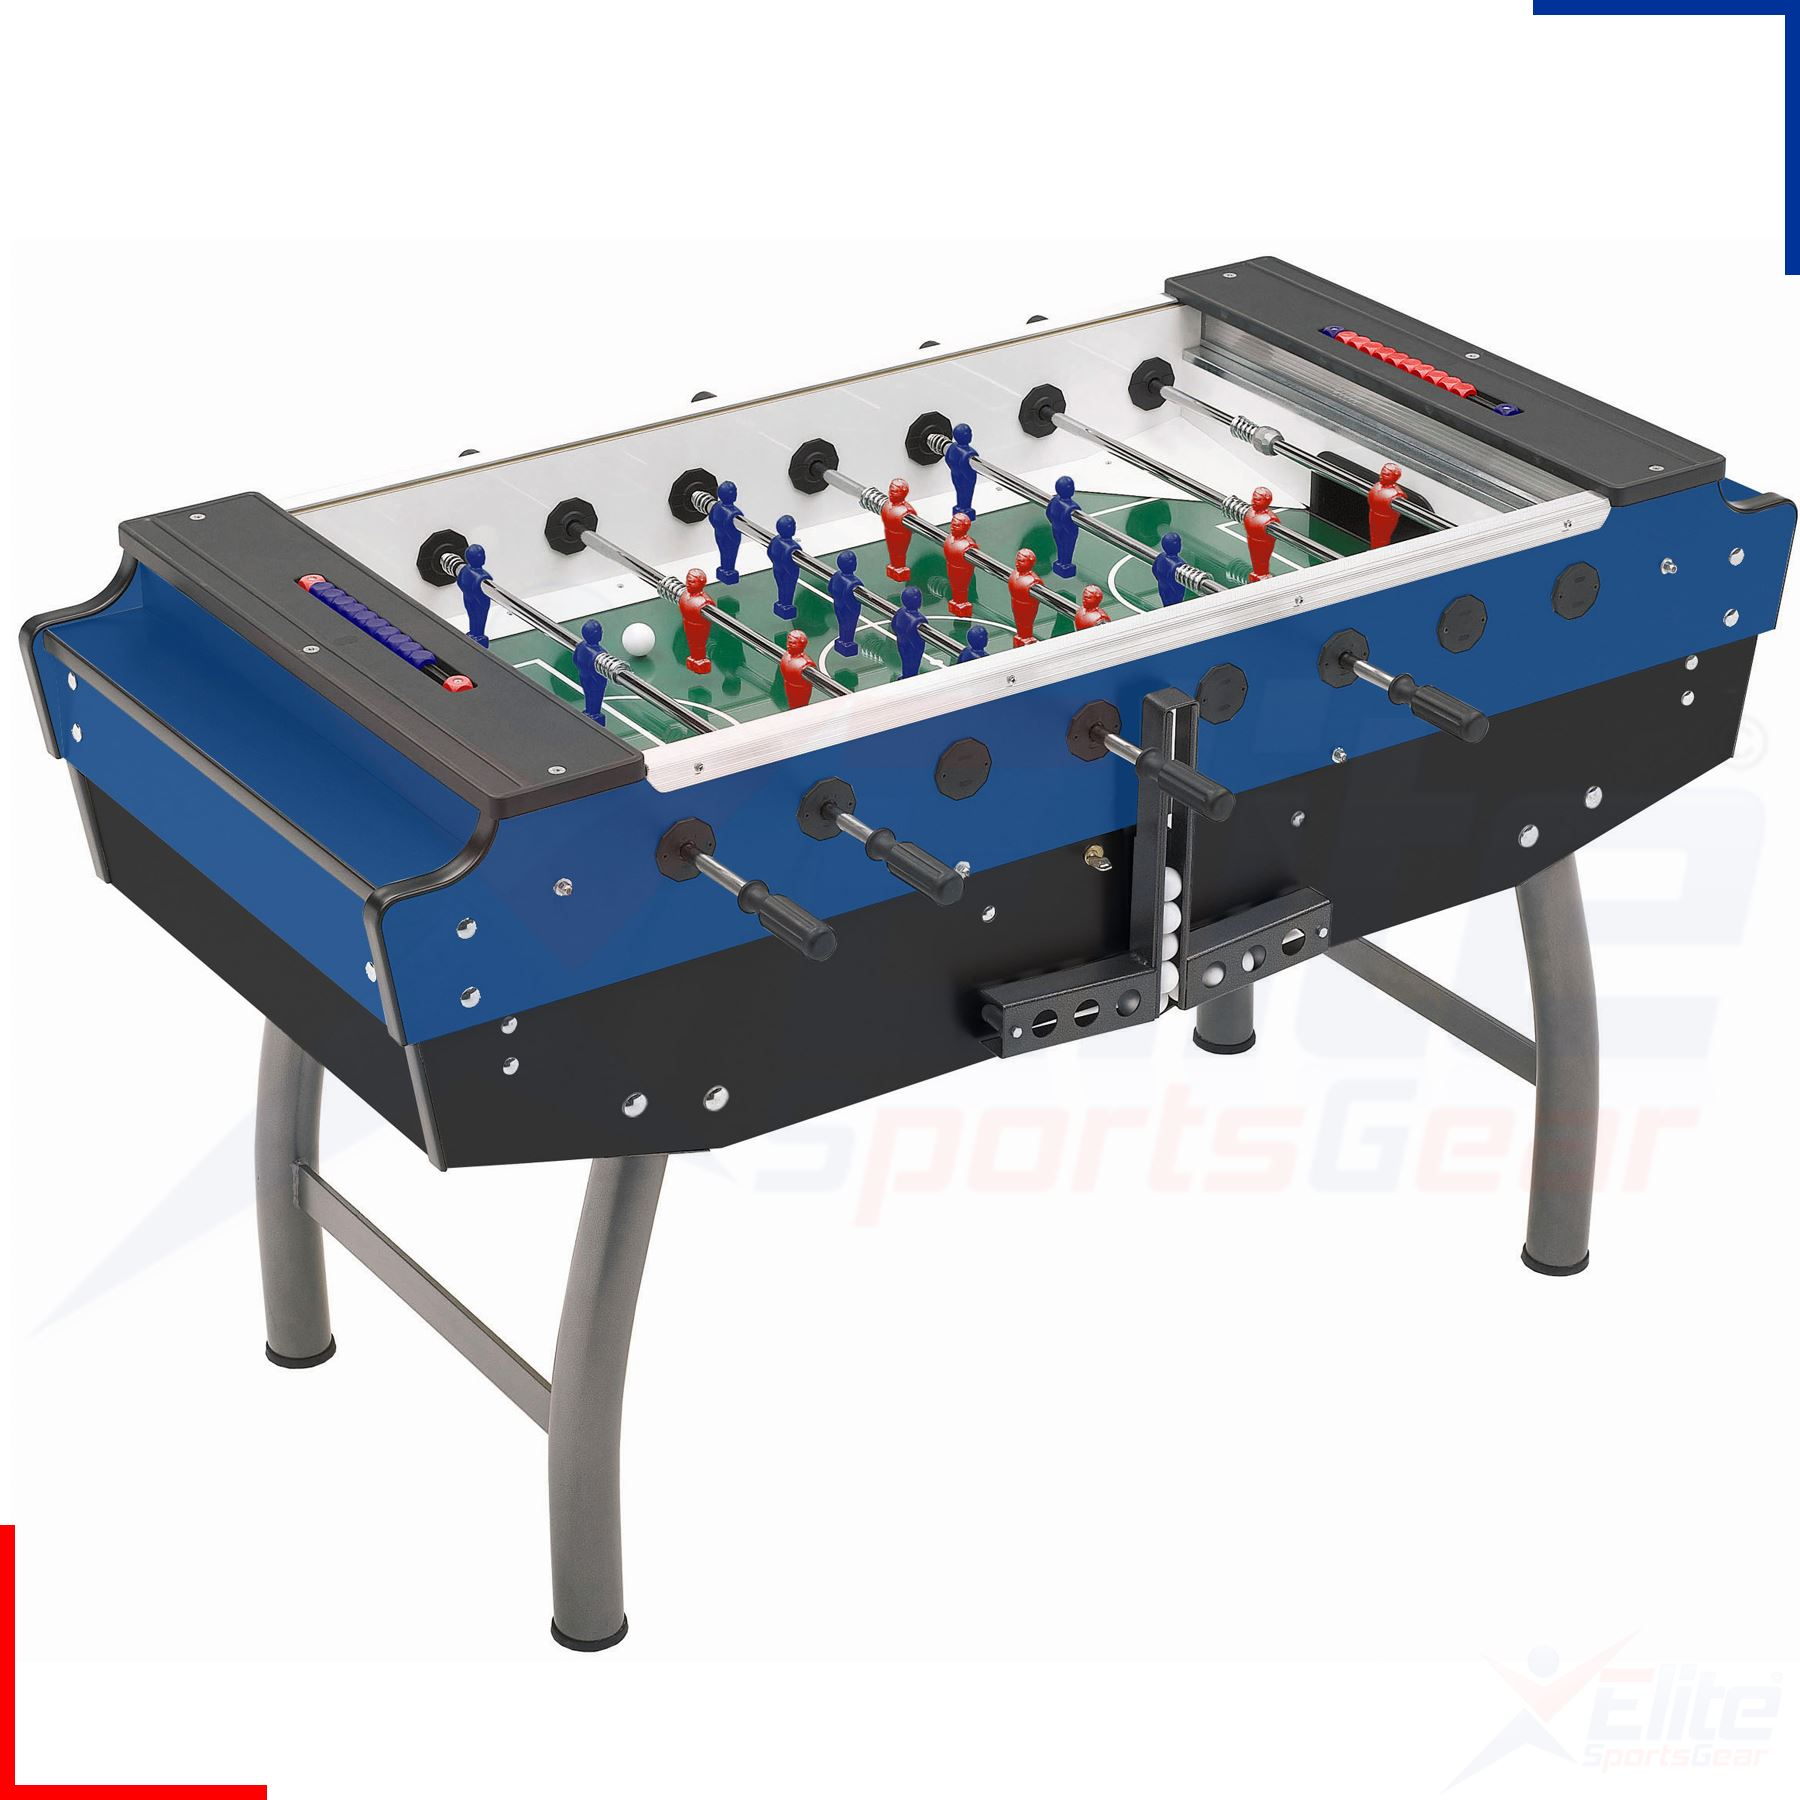 Striker Professional Italian Foosball Soccer Table Football Game EBay - Italian foosball table